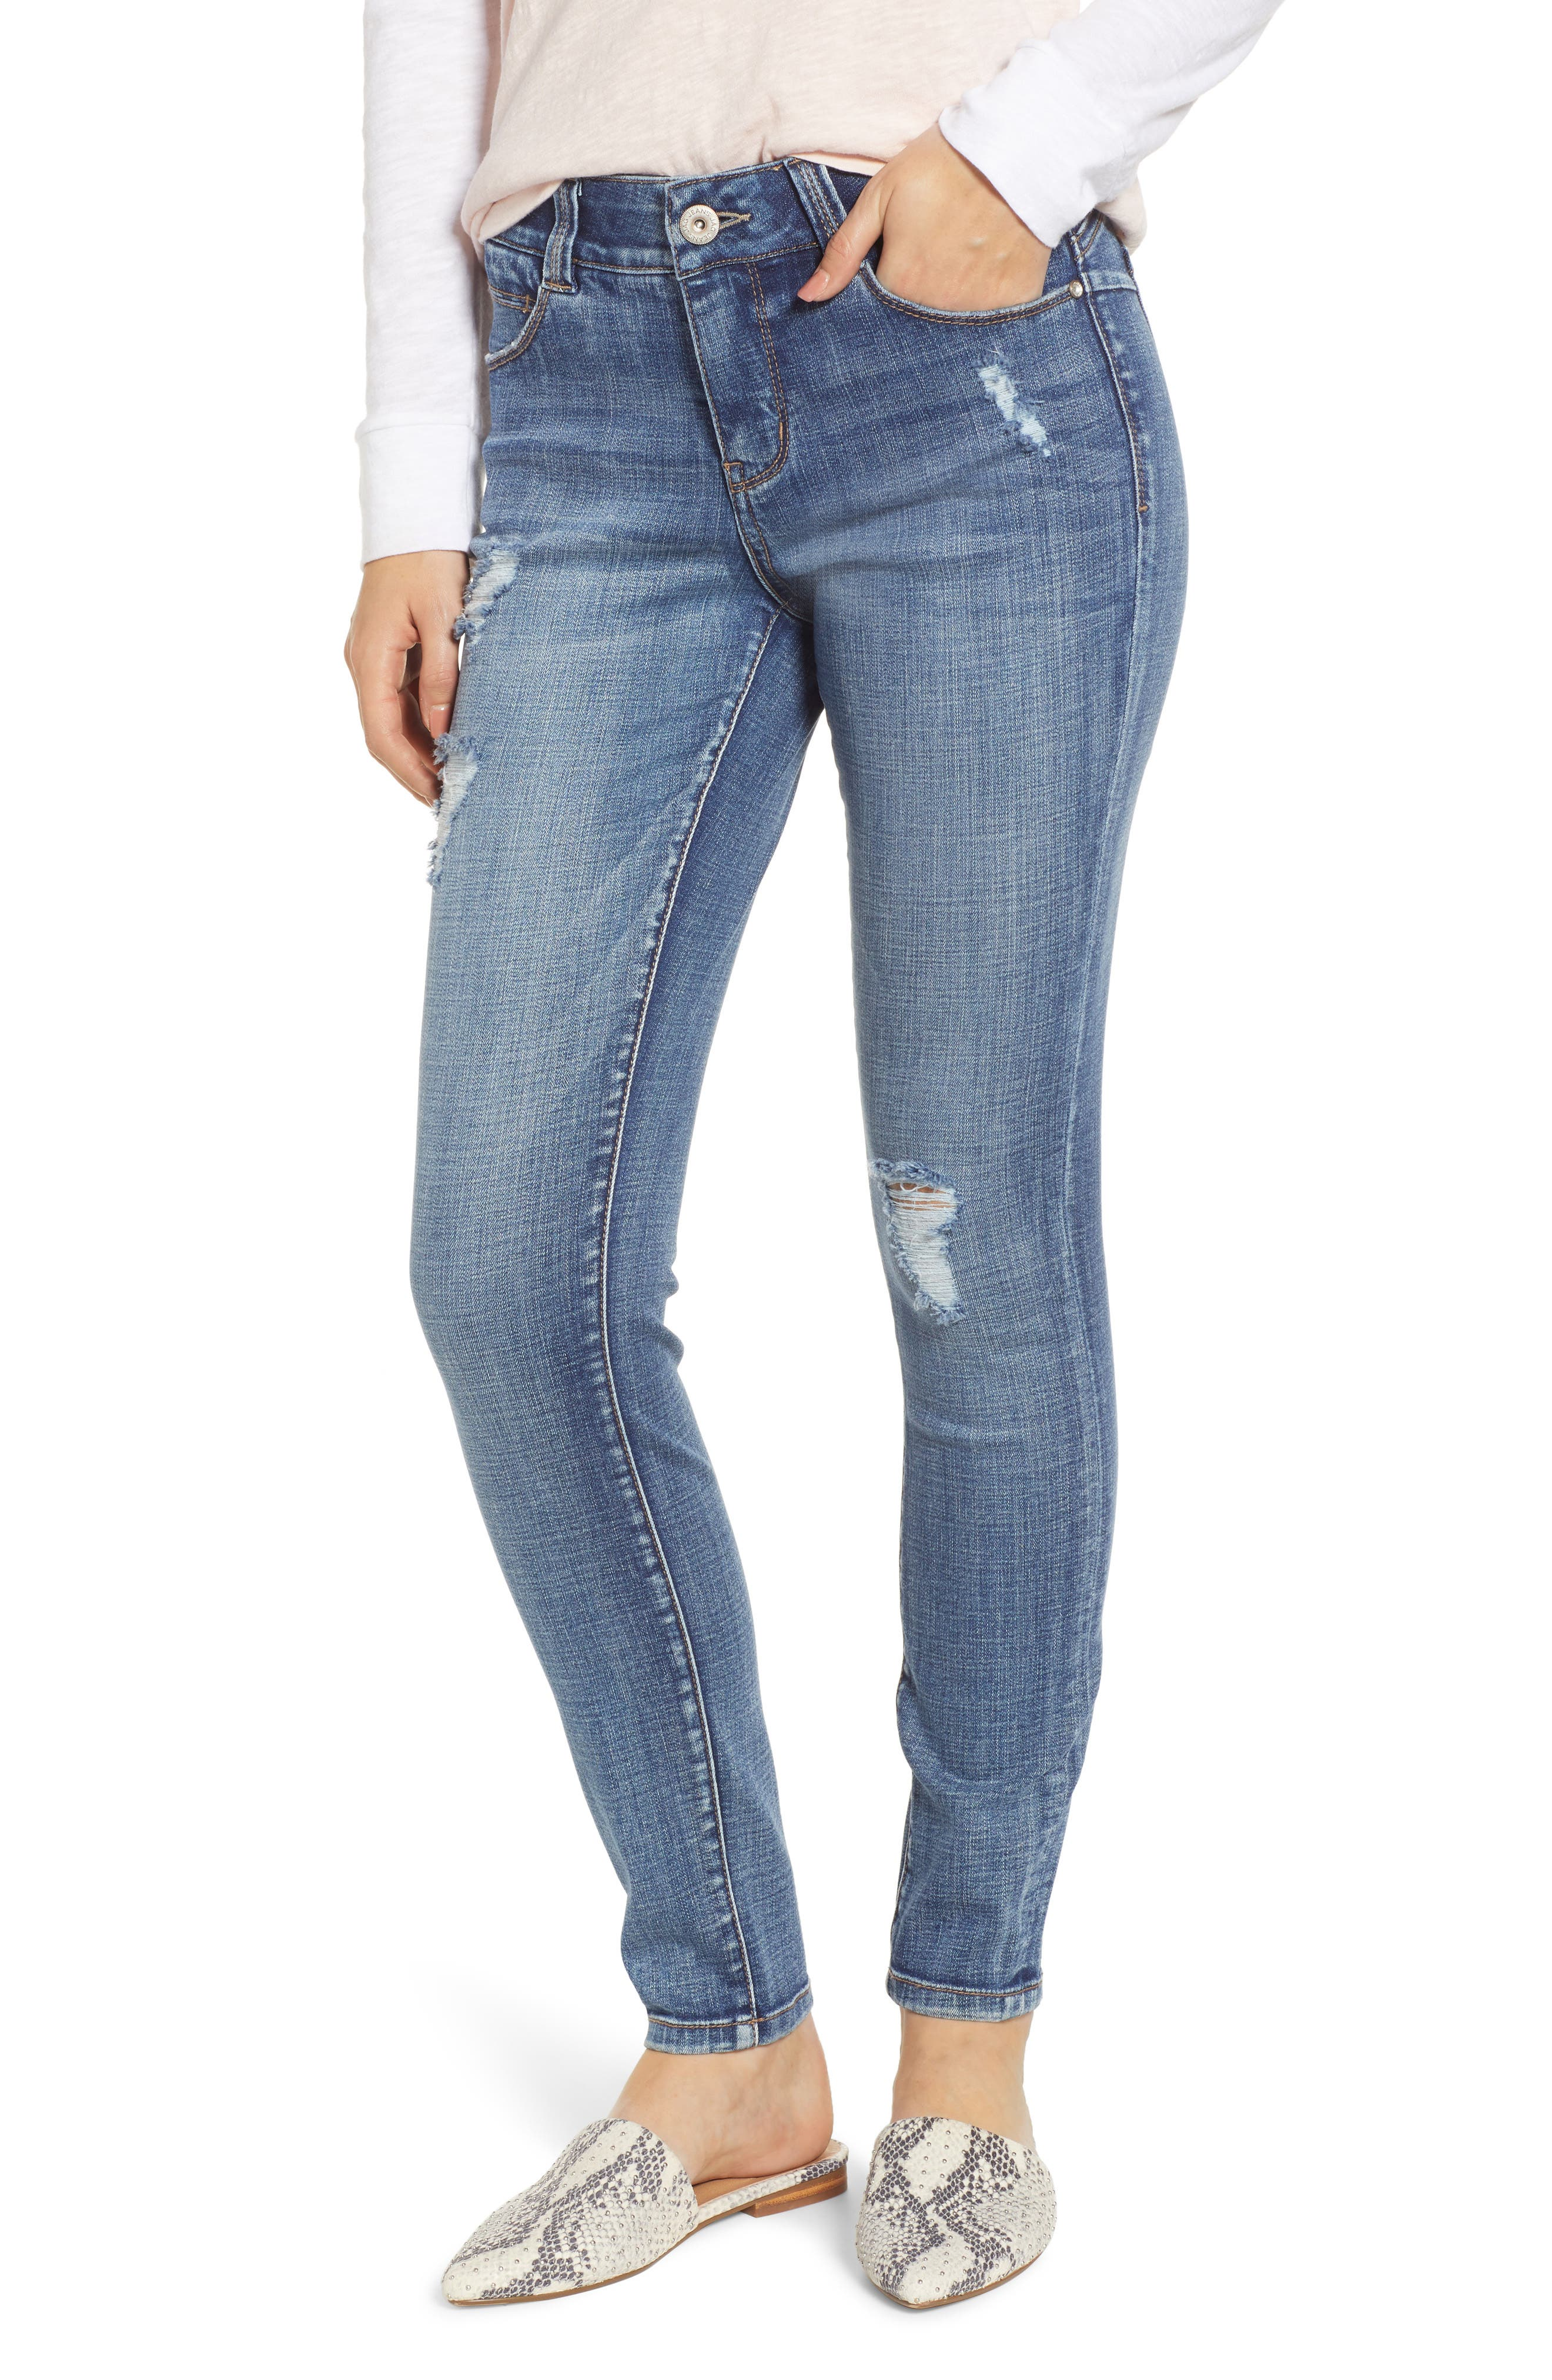 JAG JEANS Cecilia Distressed Skinny Jeans in Mid Vintage